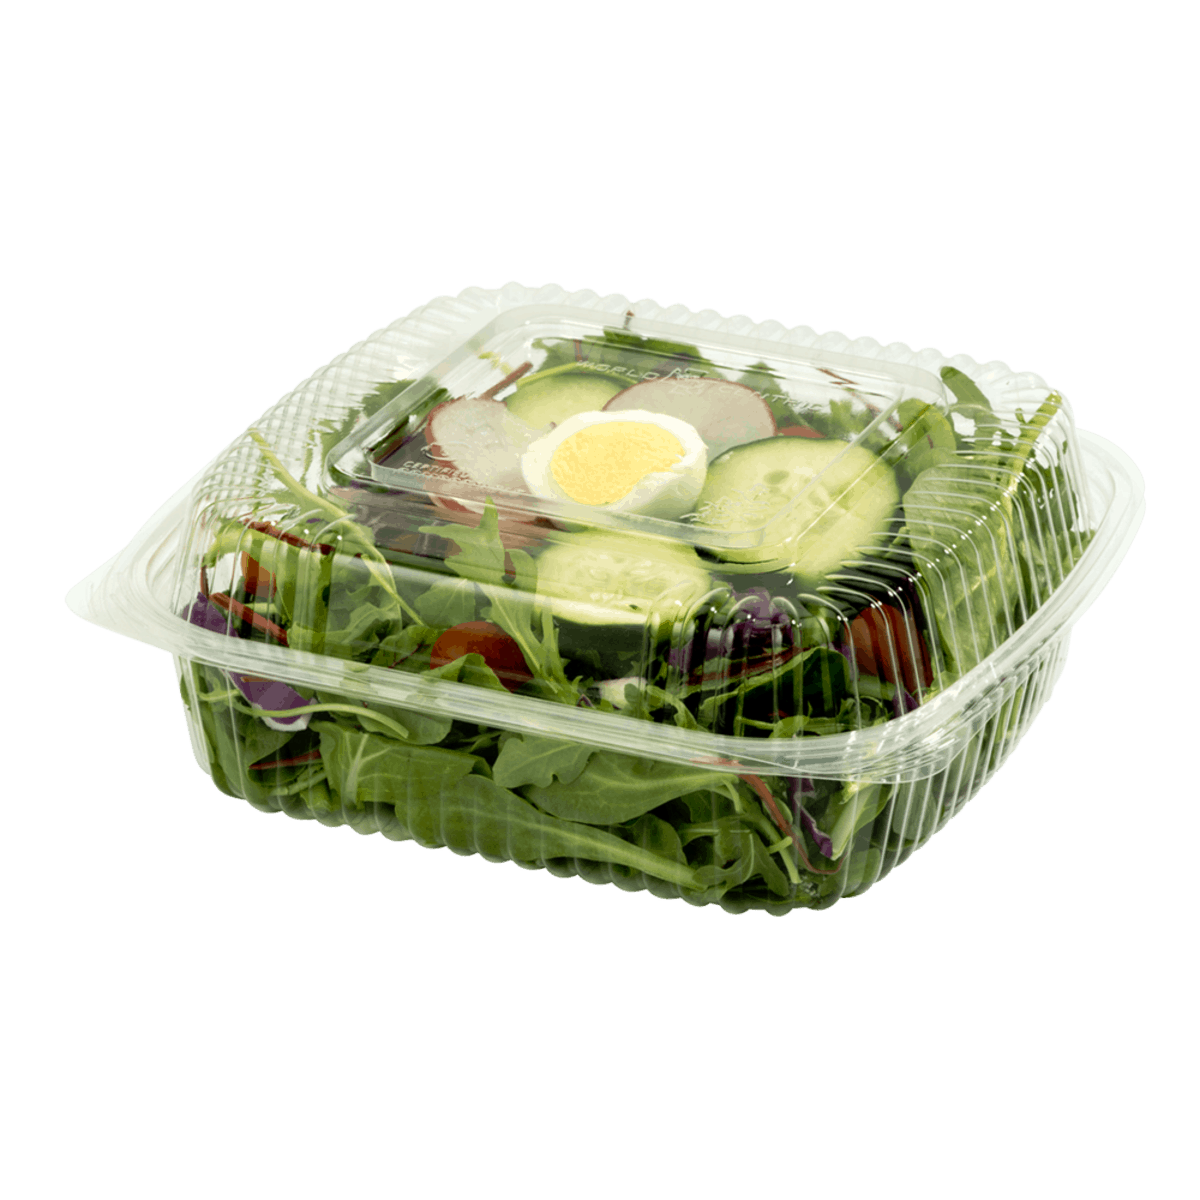 8x8x3 clear clamshell compostable